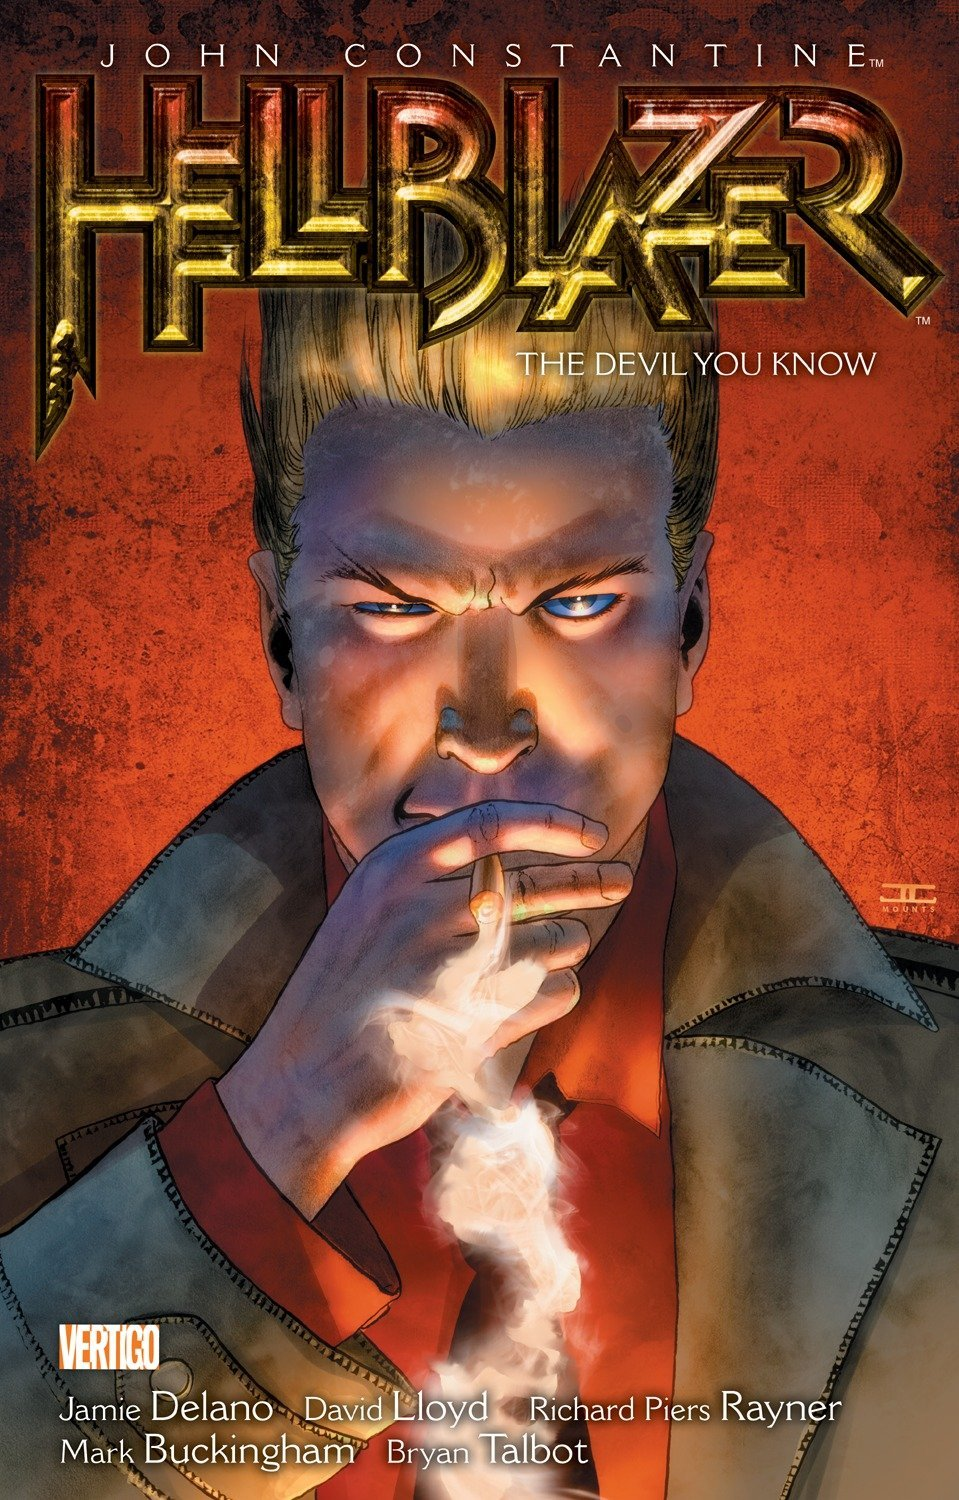 John Constantine Hellblazer Vol. 2  The Devil You Know  New Edition